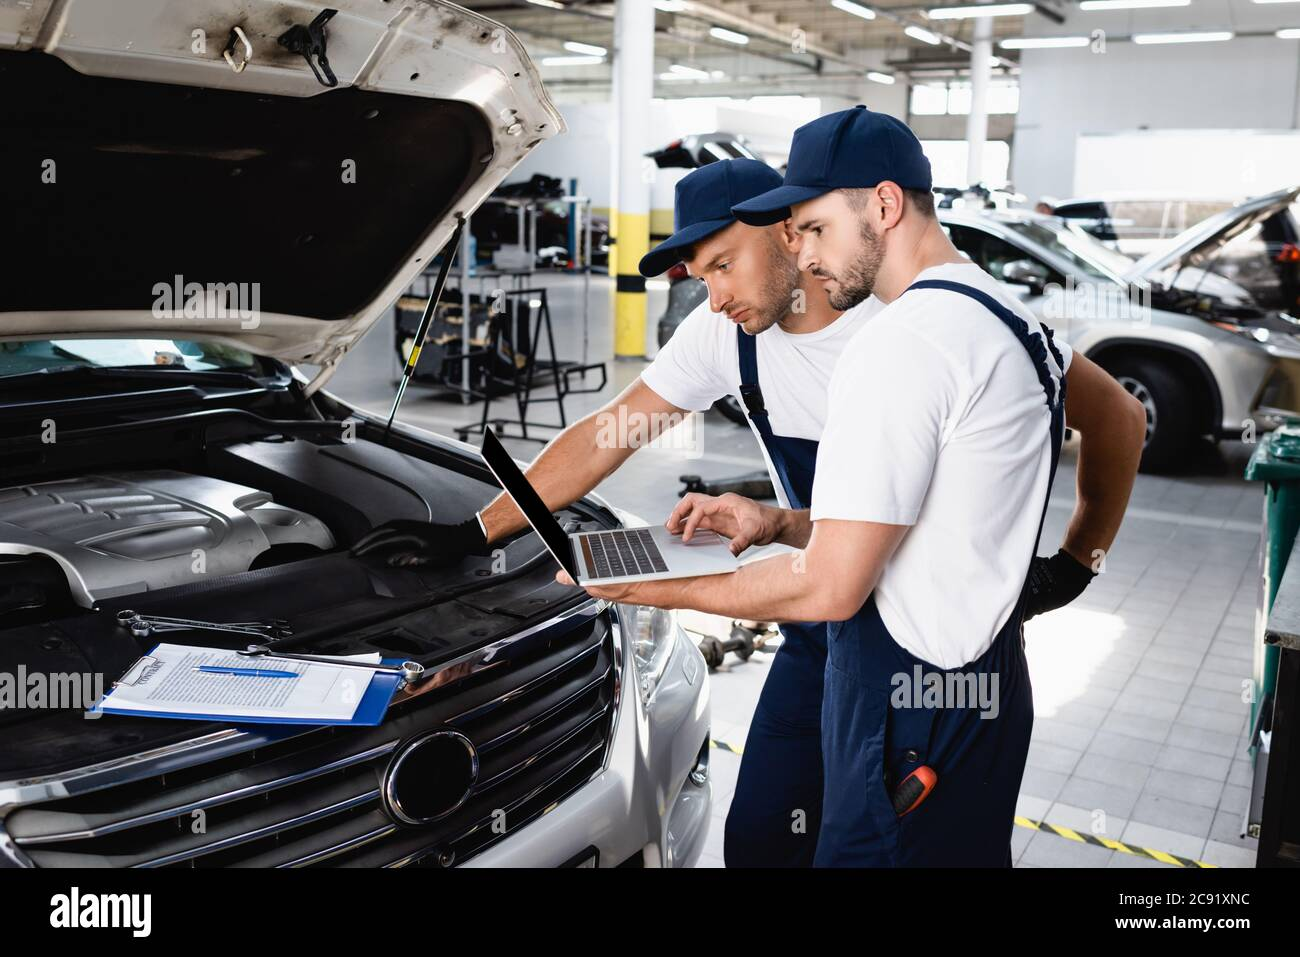 Auto Mechanics Looking At Laptop Screen Near Open Hood Of Car At Service Station Stock Photo Alamy